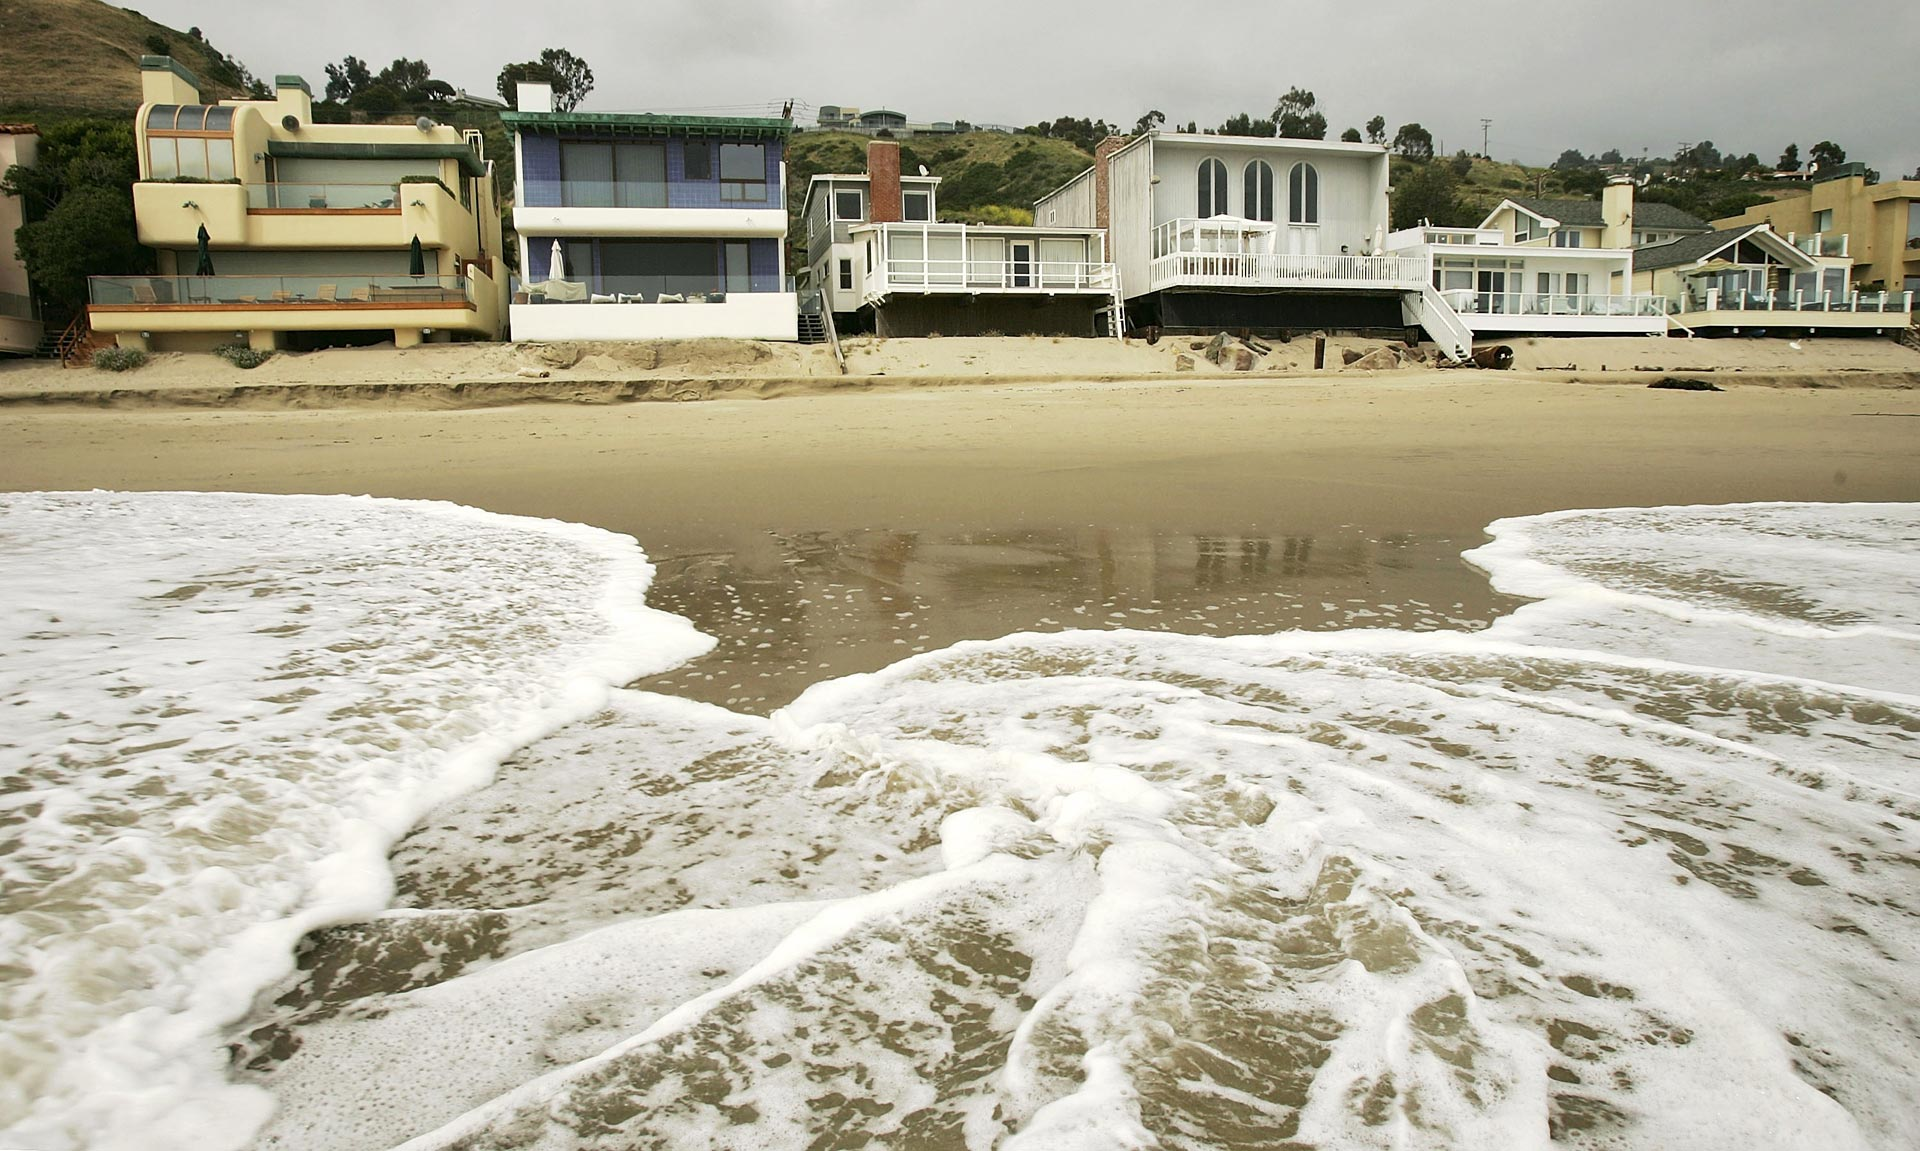 Luxurious beach houses crowd the shoreline hiding Carbon Beach in Malibu. A lengthy legal battle over public access to the beach culminated in 2005, with music producer David Geffen allowing a public pathway across his property in exchange for permits from the Coastal Commission to begin building a Cape Cod-style compound across multiple lots.